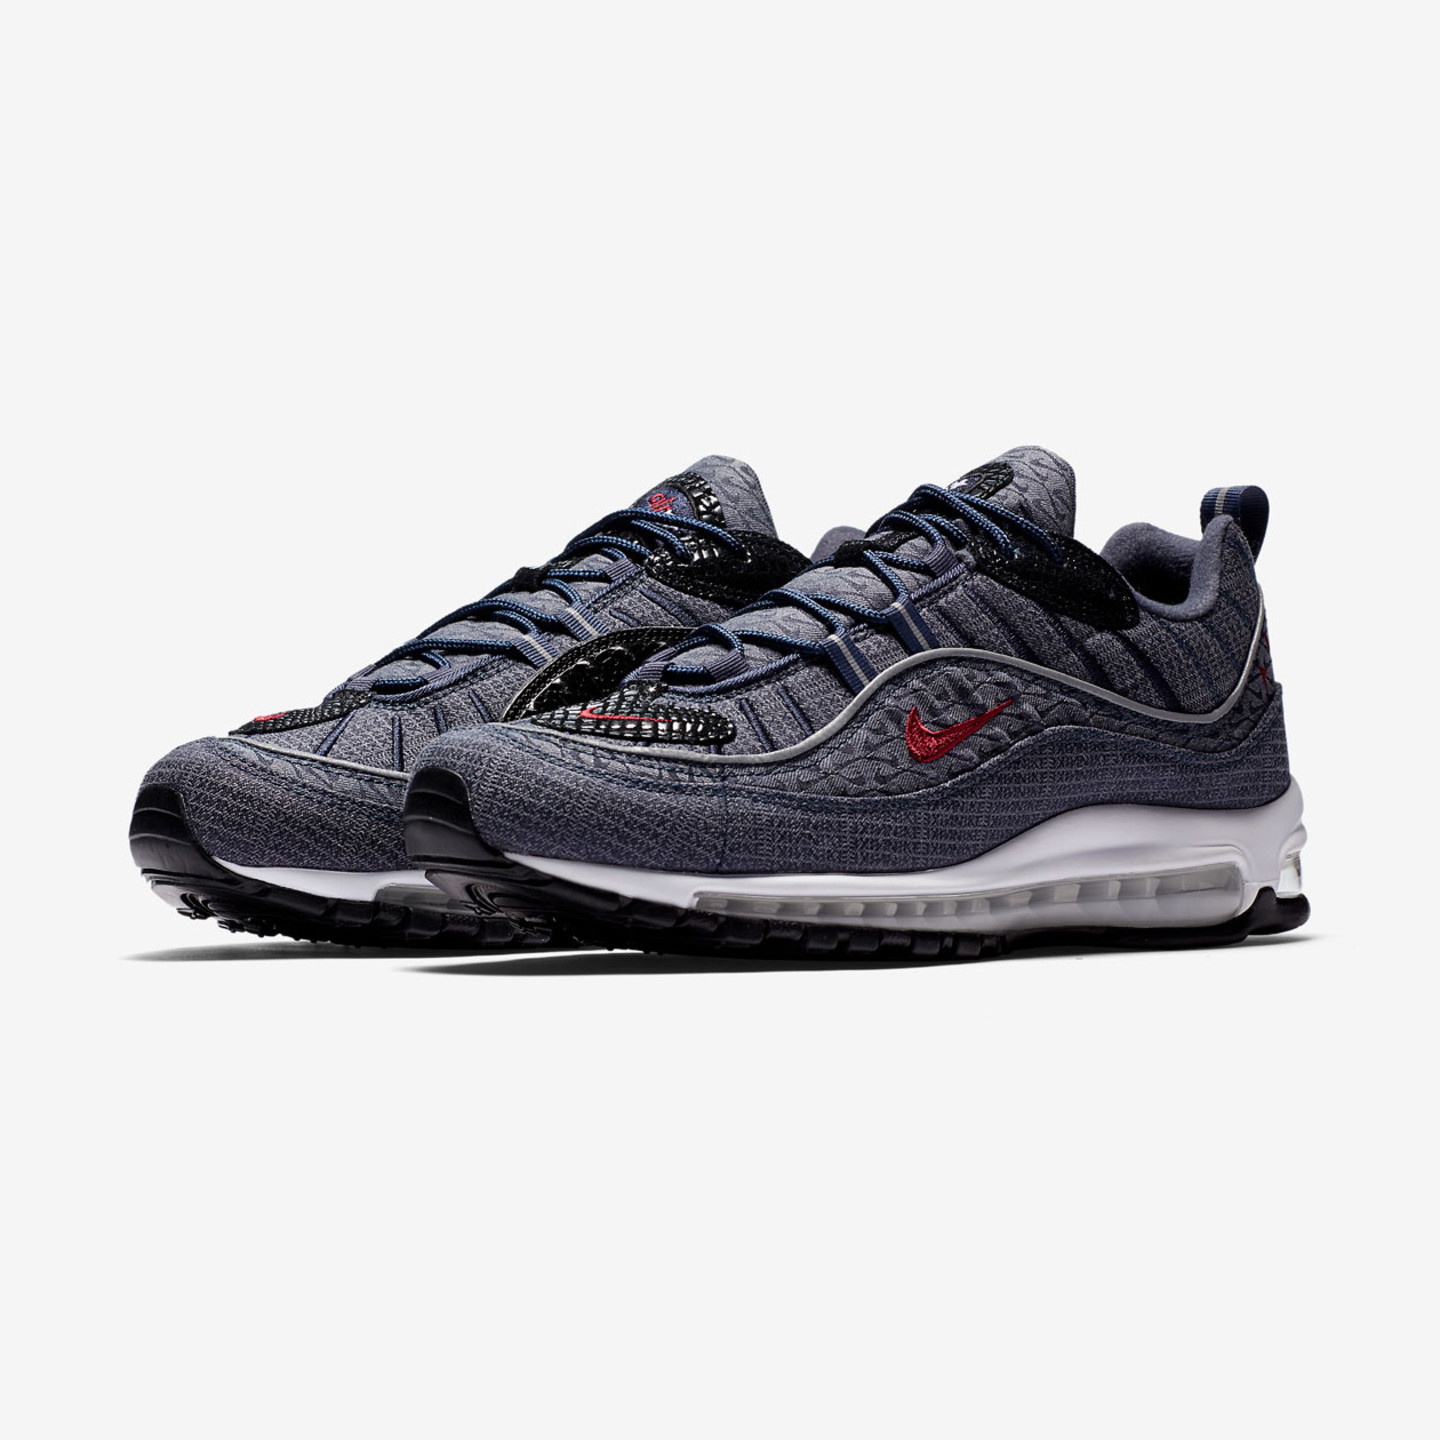 Nike Air Max 98 QS 'Don Denim' Thunder Blue / Team Red / Diffused Blue 924462-400